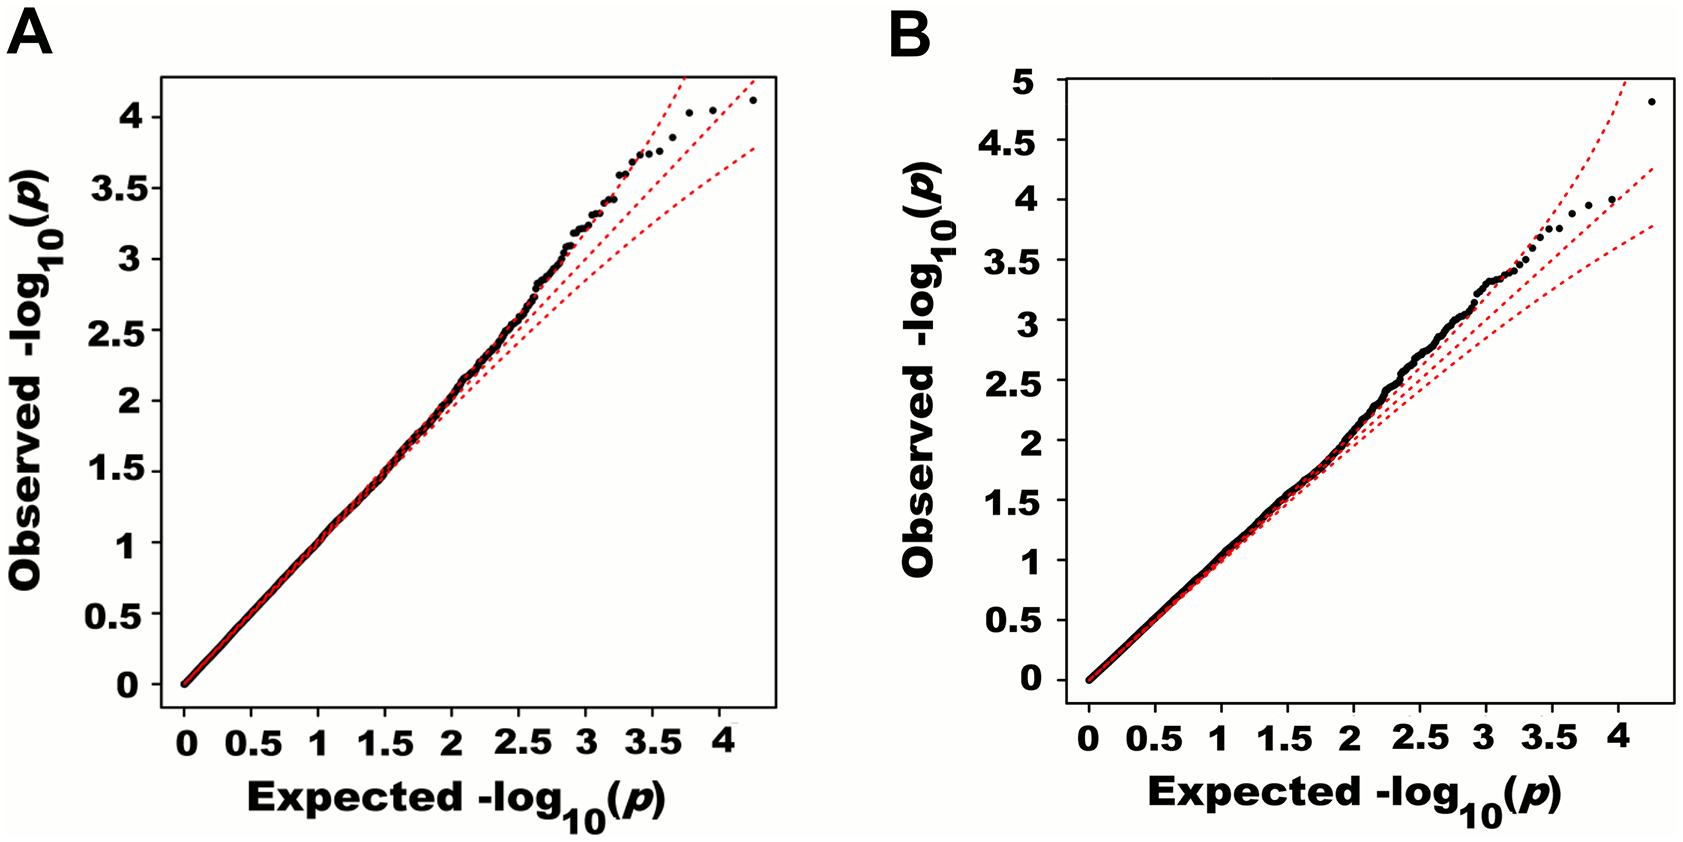 Quantile-quantile plots of association <i>p</i>-values of SNPs encompassed by windows centered on known height loci.